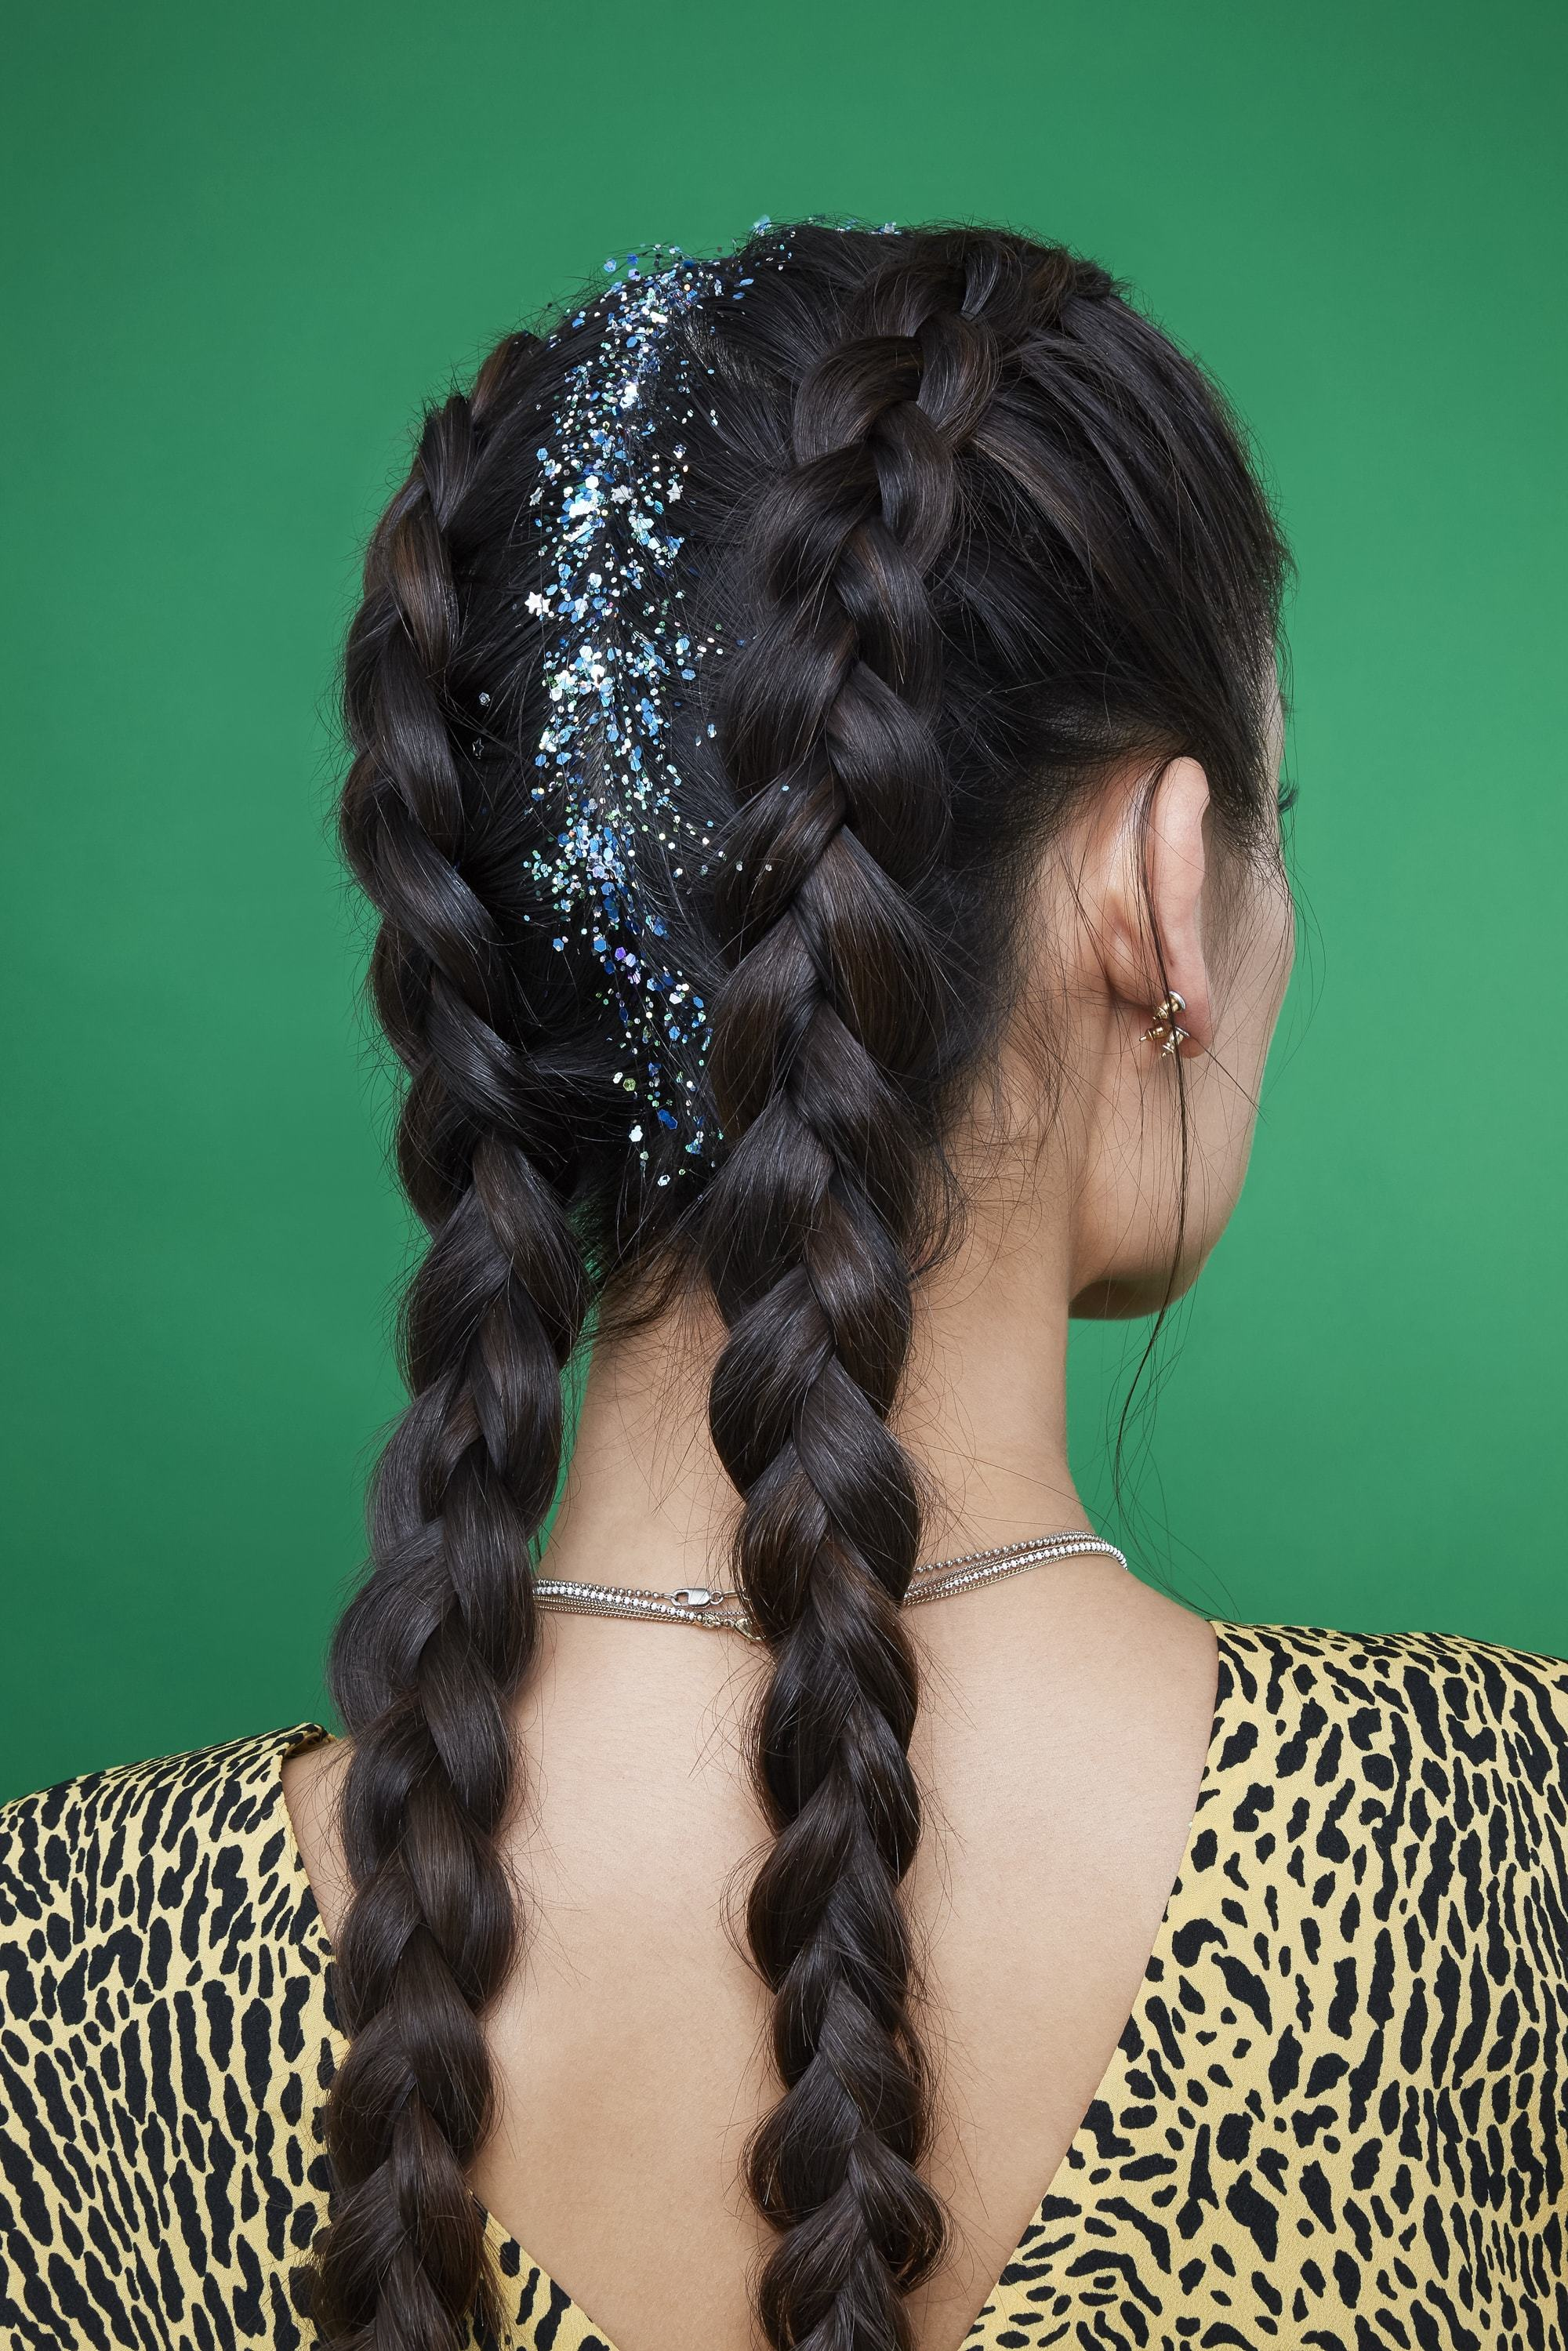 festival braids: close up shot of woman with glittery, festival boxer braids, wearing leopard print top and posing in a studio